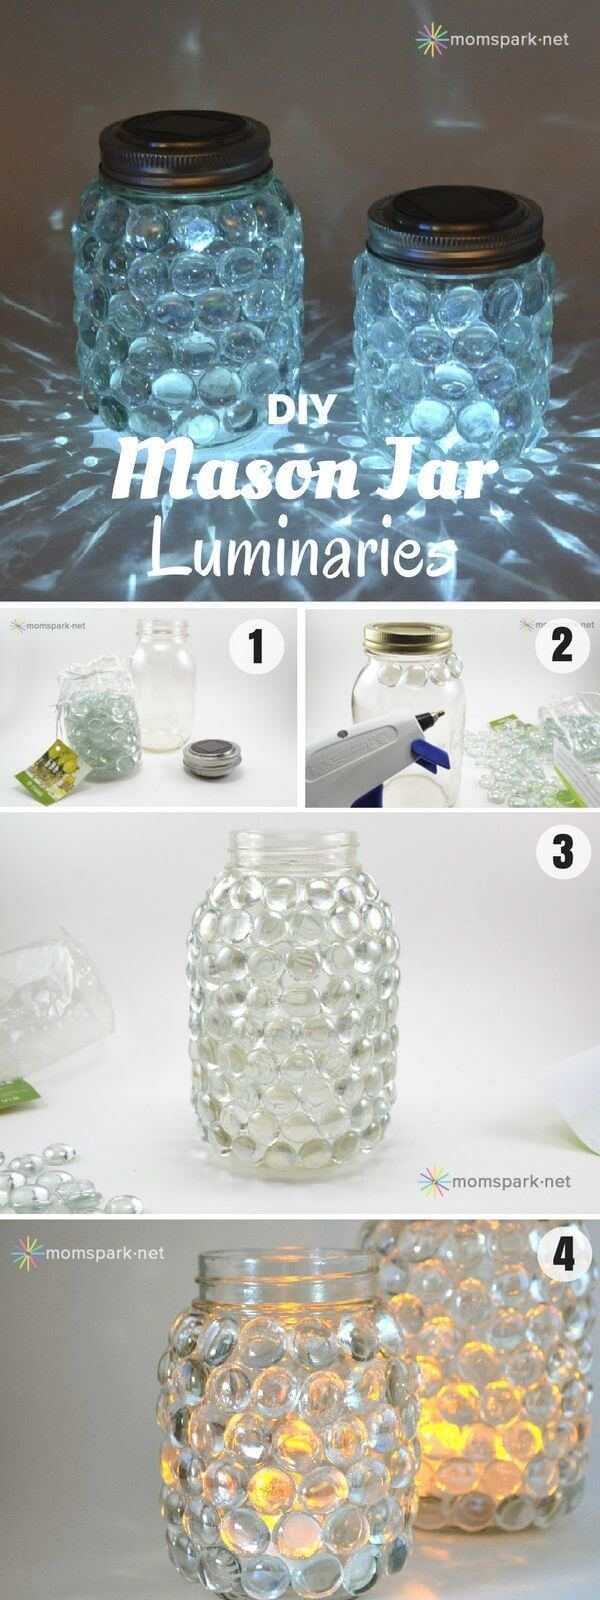 Glass Jewel DIY Mason Jar Luminaries